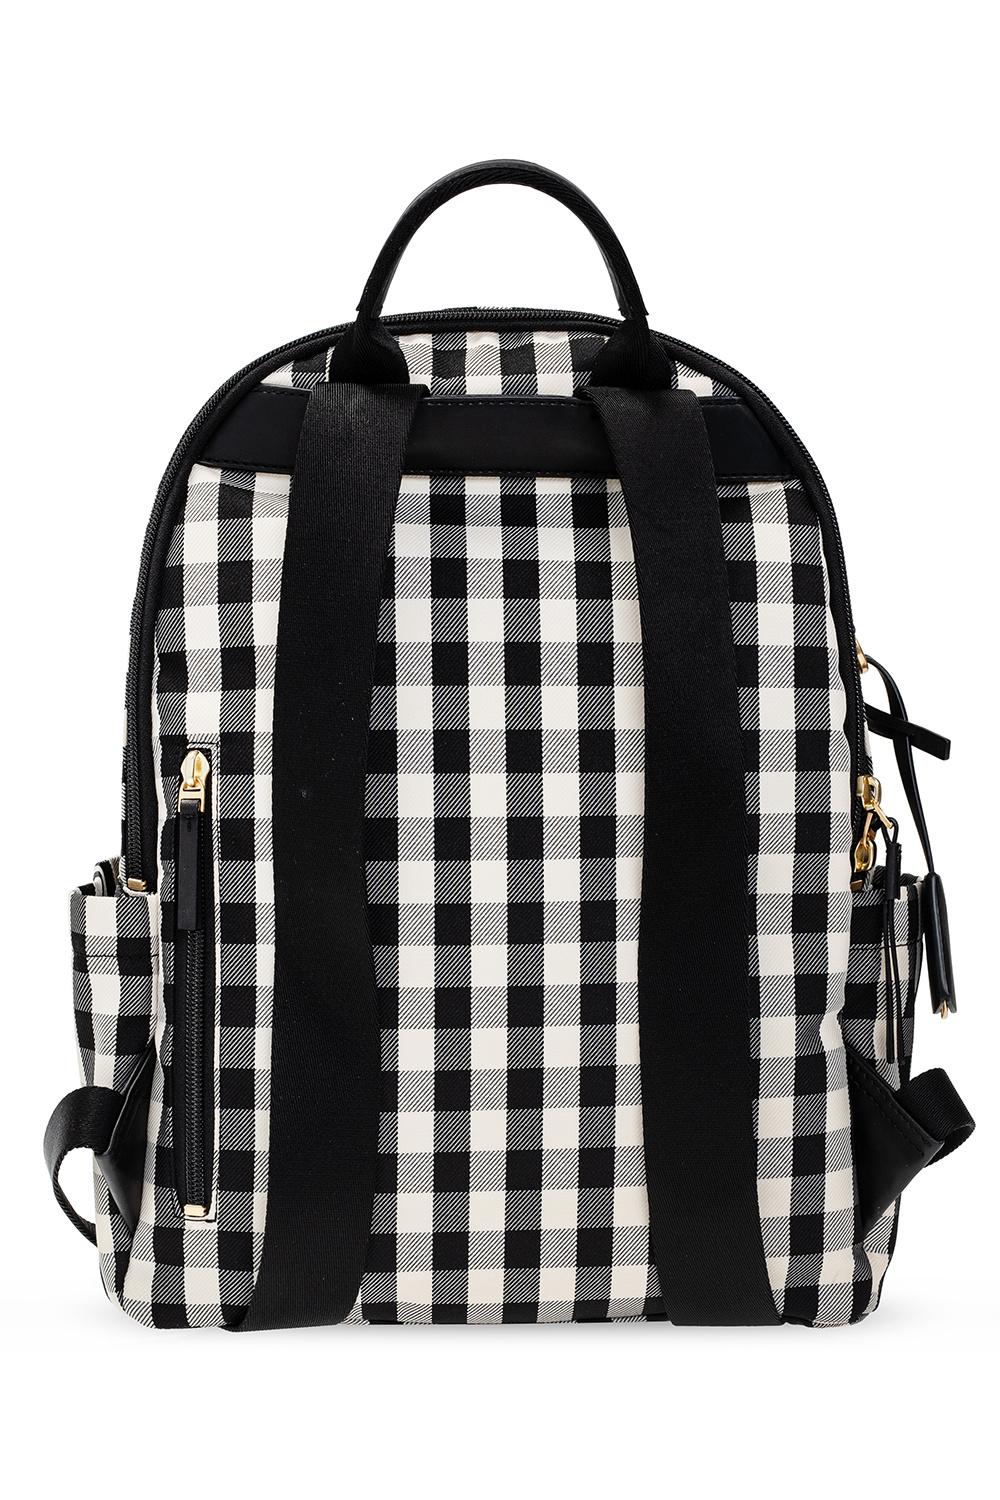 Tory Burch 'Piper Gingham' backpack with logo